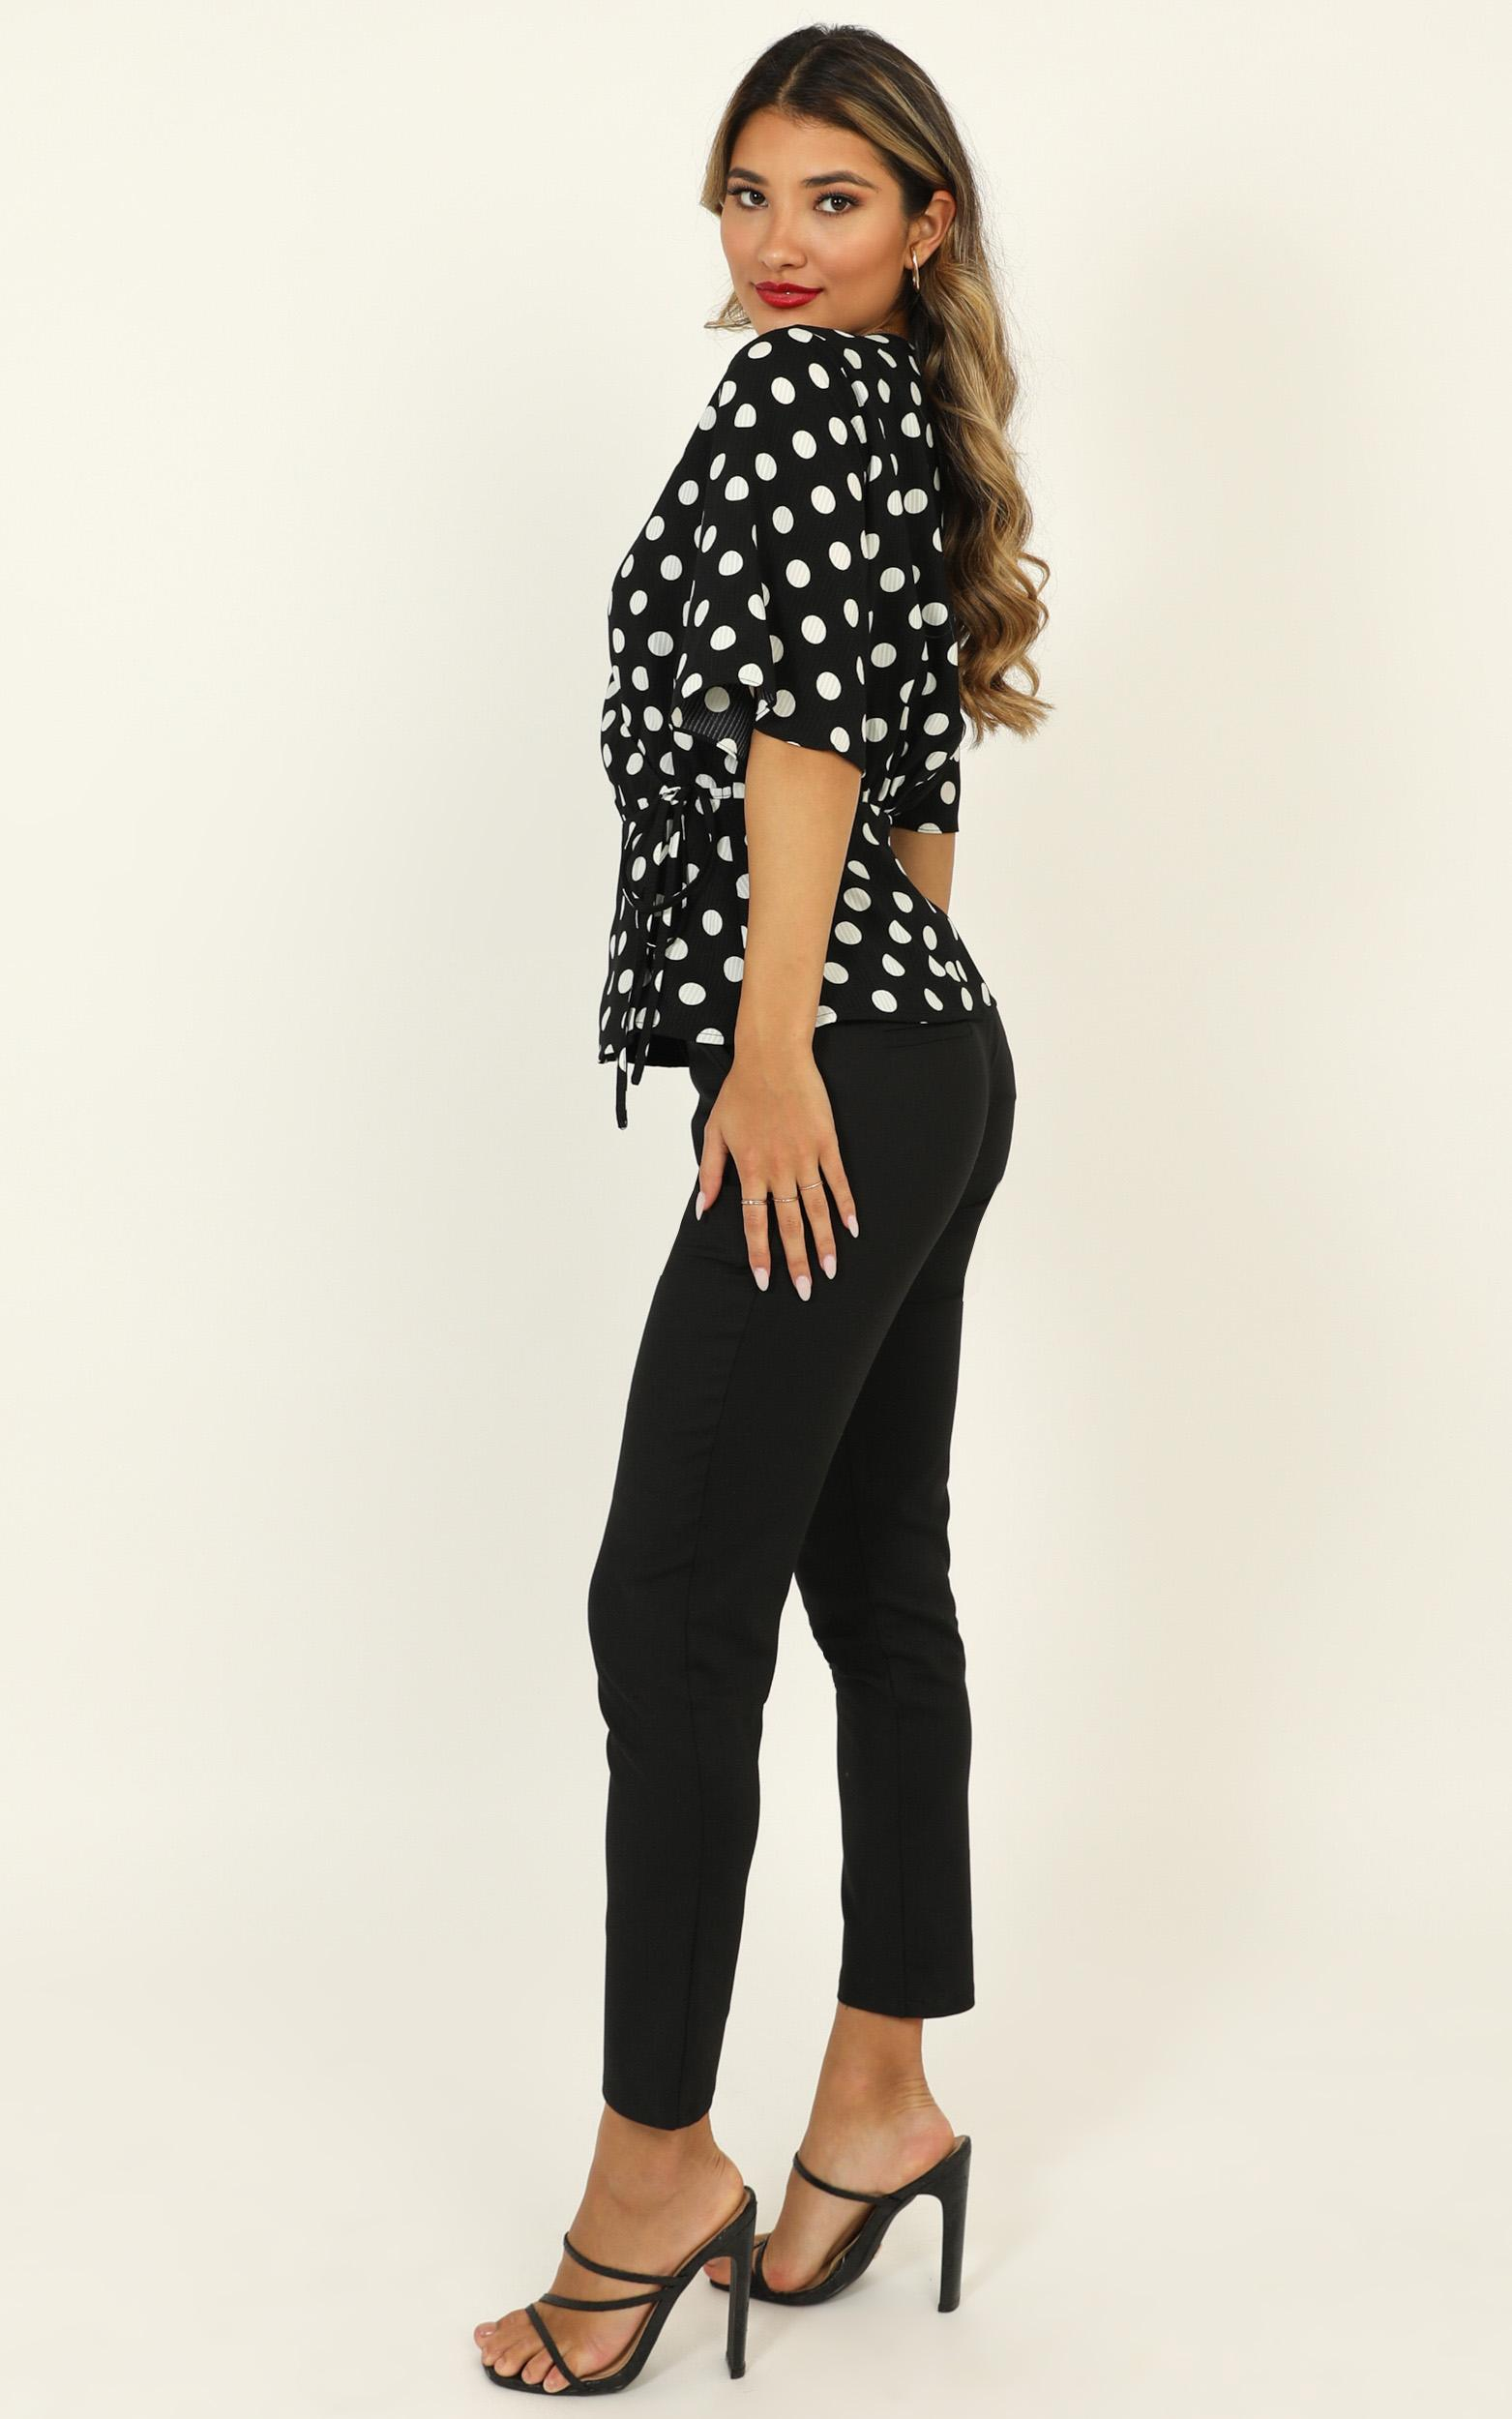 Born Leader Top in black spot - 20 (XXXXL), BLK1, hi-res image number null